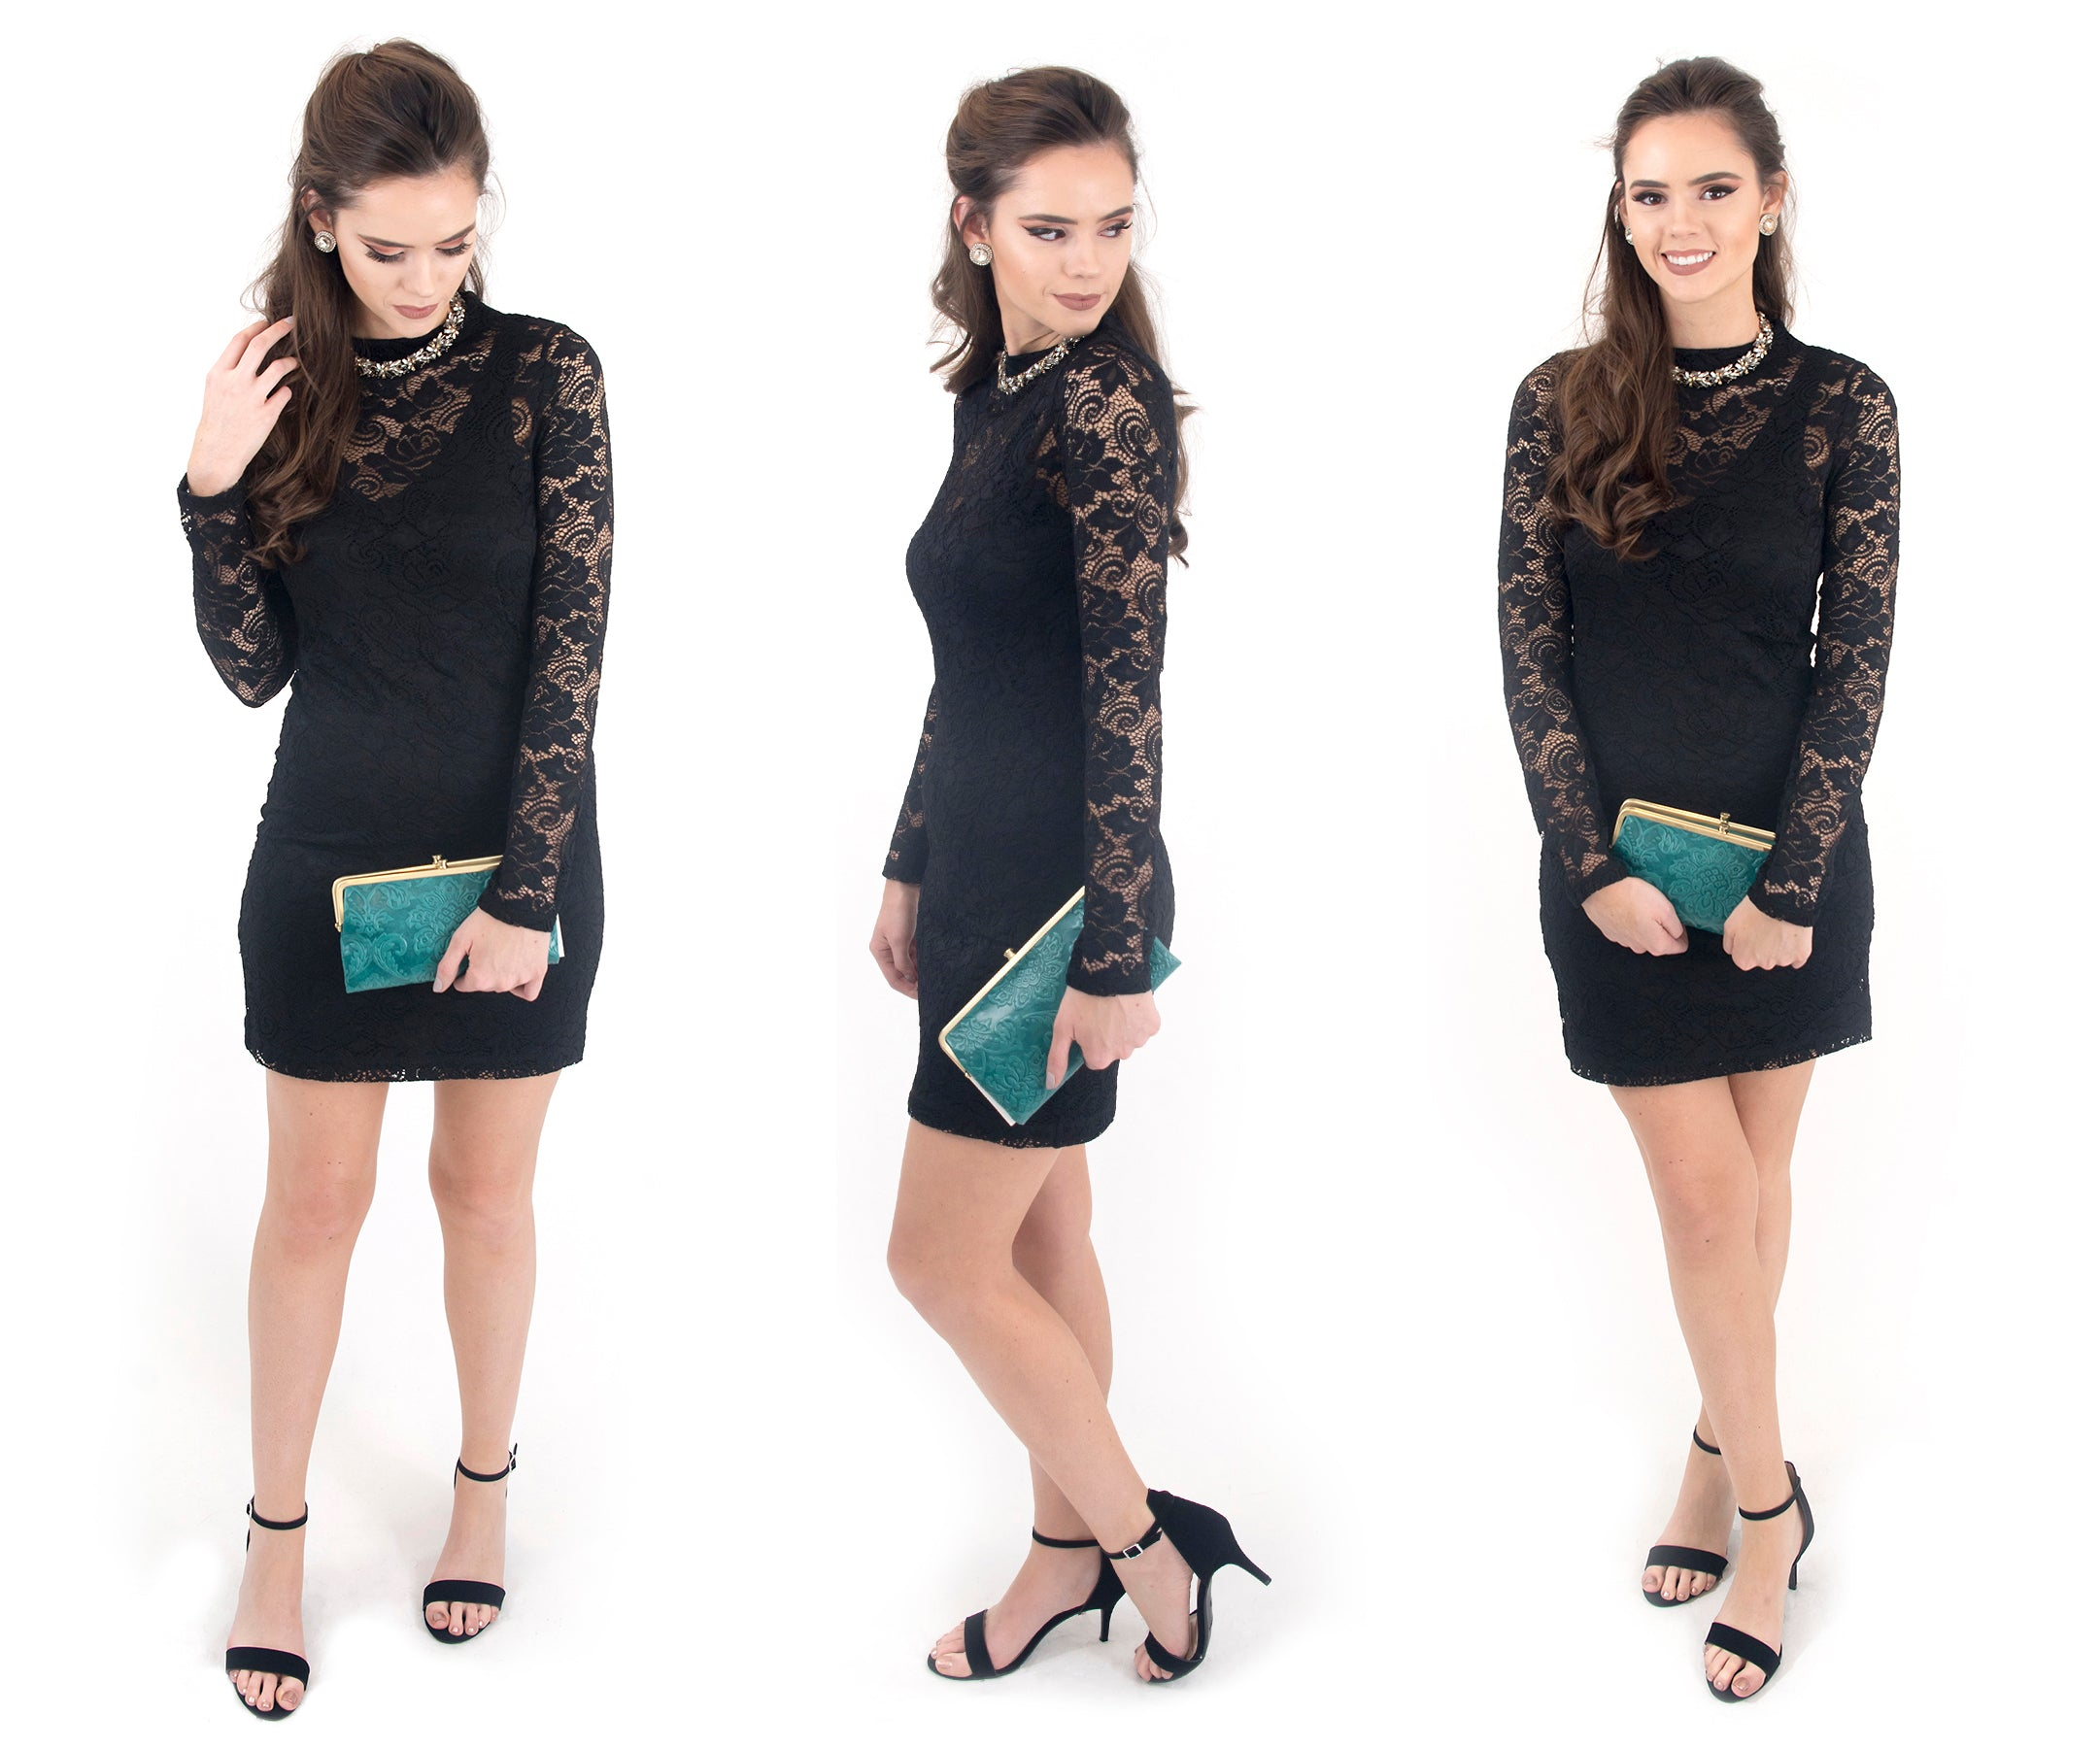 Shop women's BCBGeneration lace mock neck little black dress at eccentrics boutique.